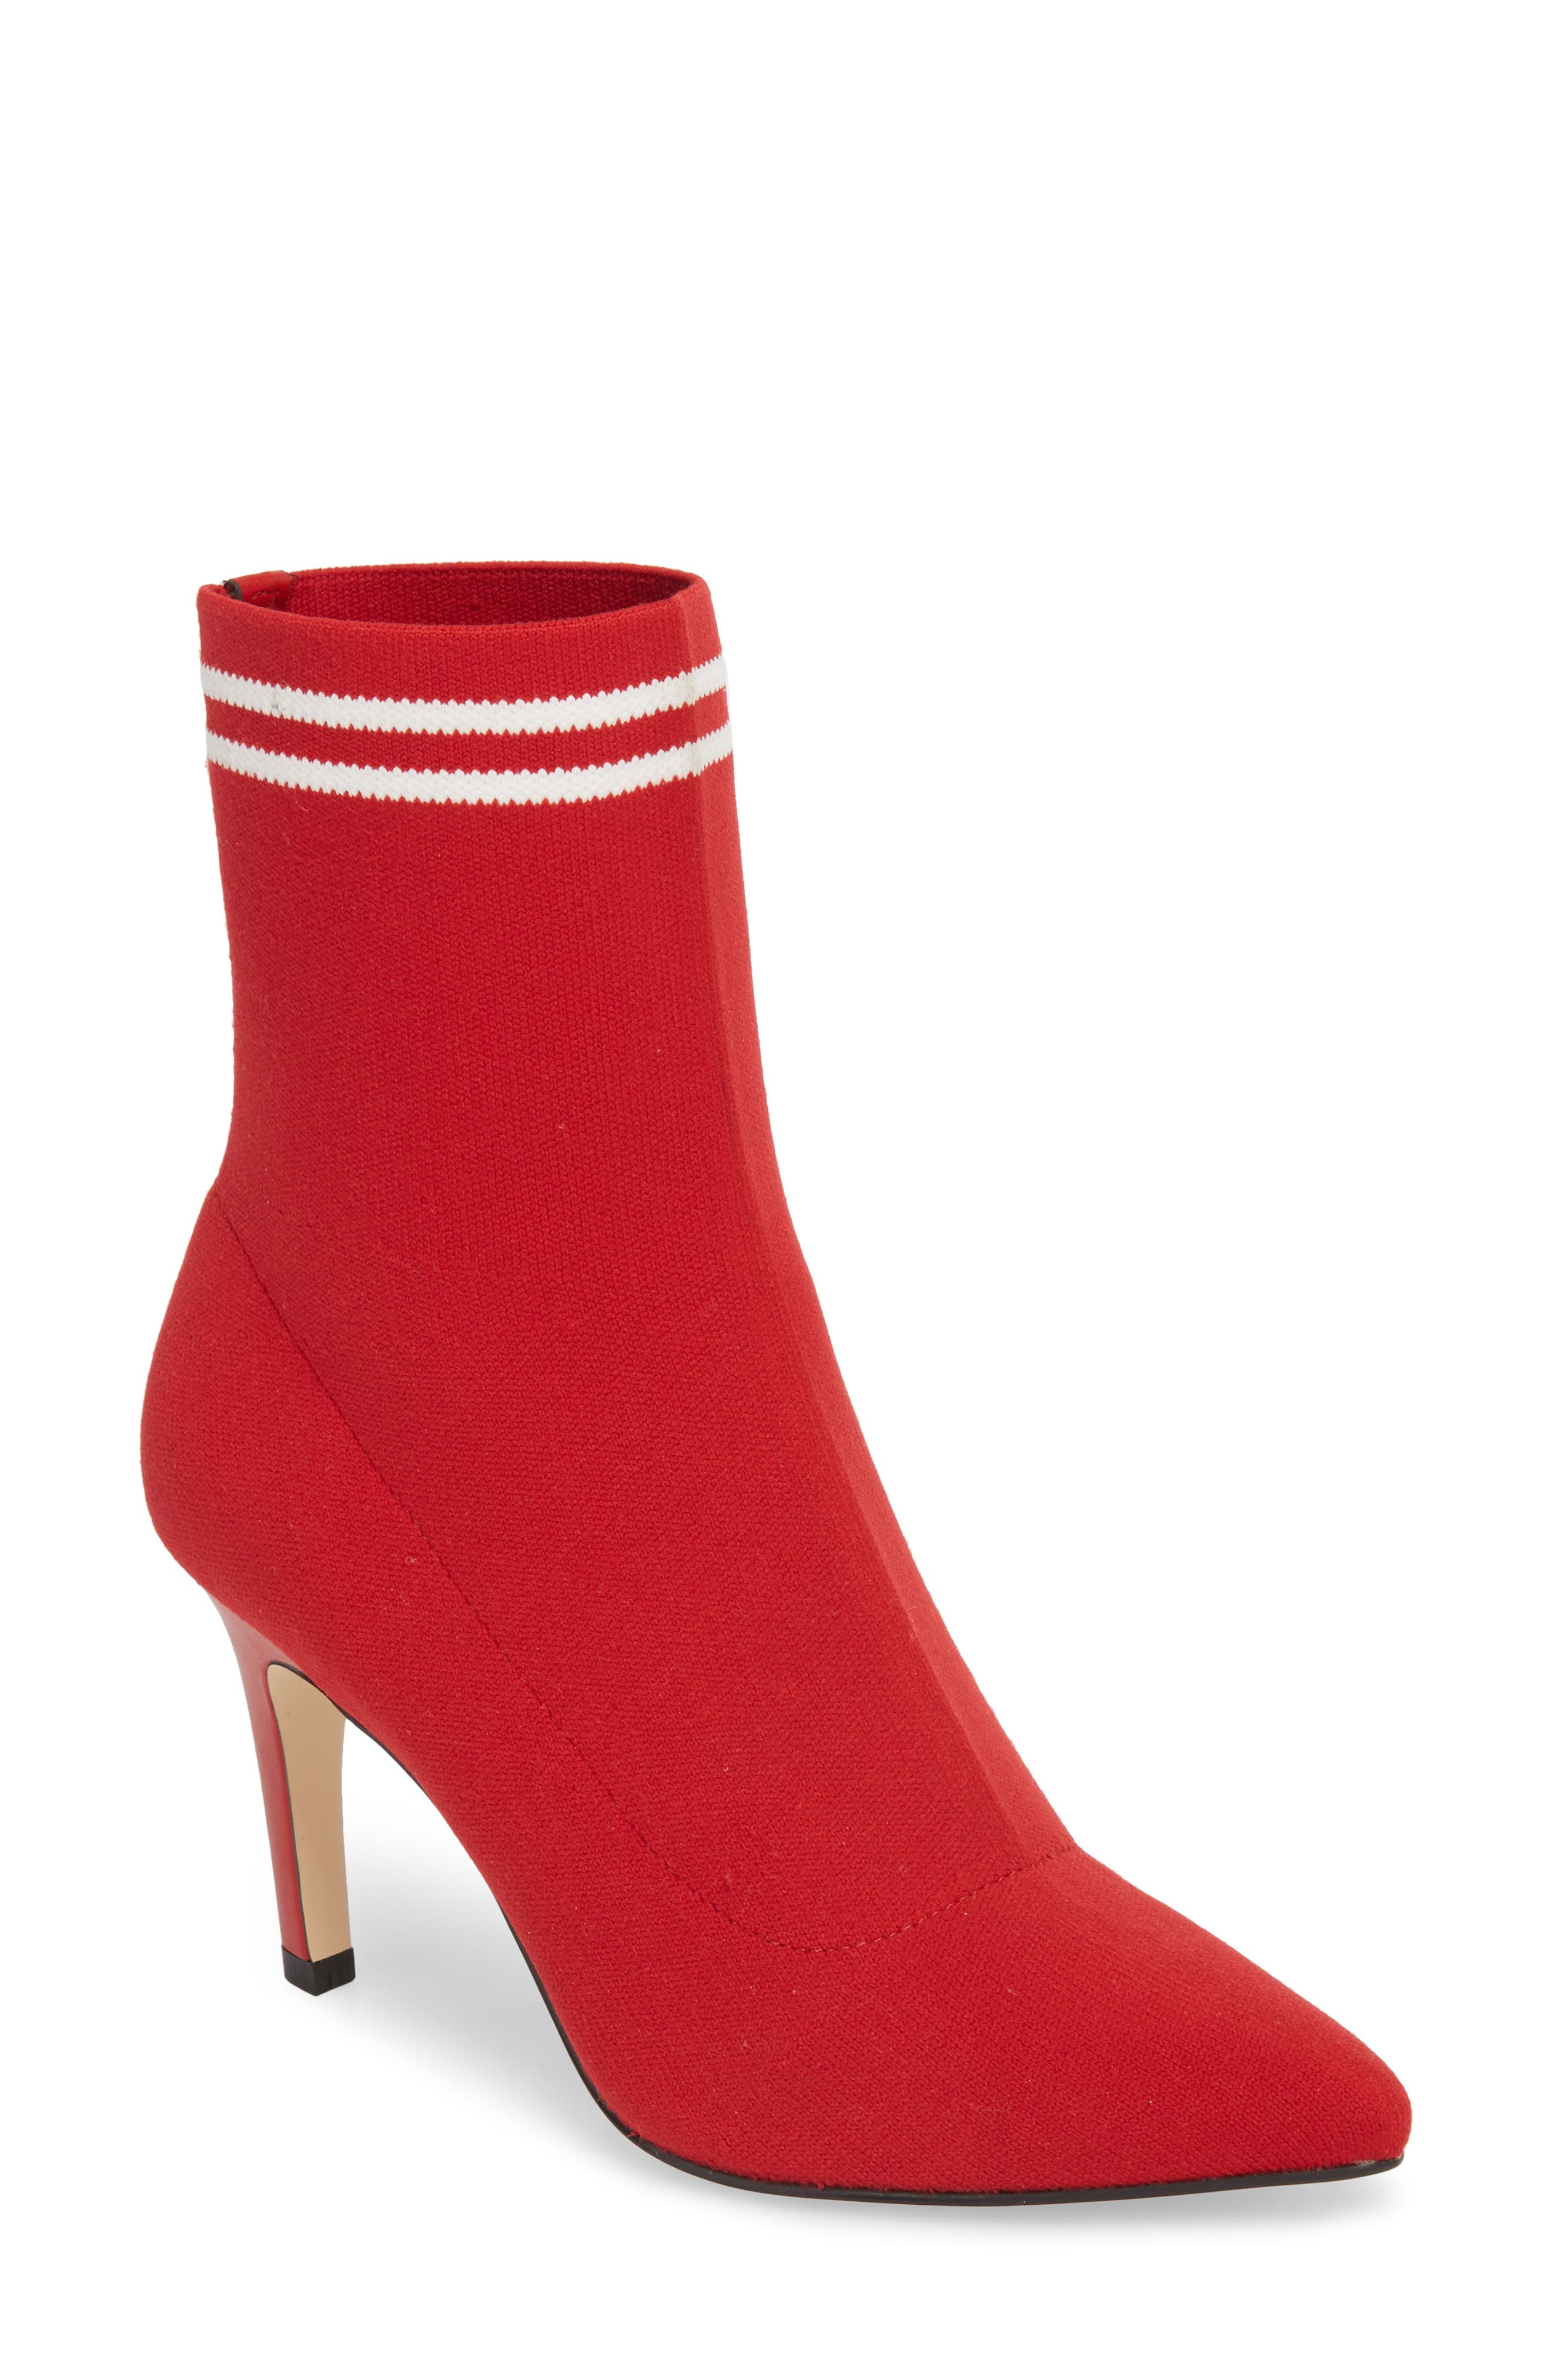 60s Shoes, Boots | 70s Shoes, Platforms, Boots Womens Leith Finn Sock Bootie Size 11 M - Red $43.98 AT vintagedancer.com